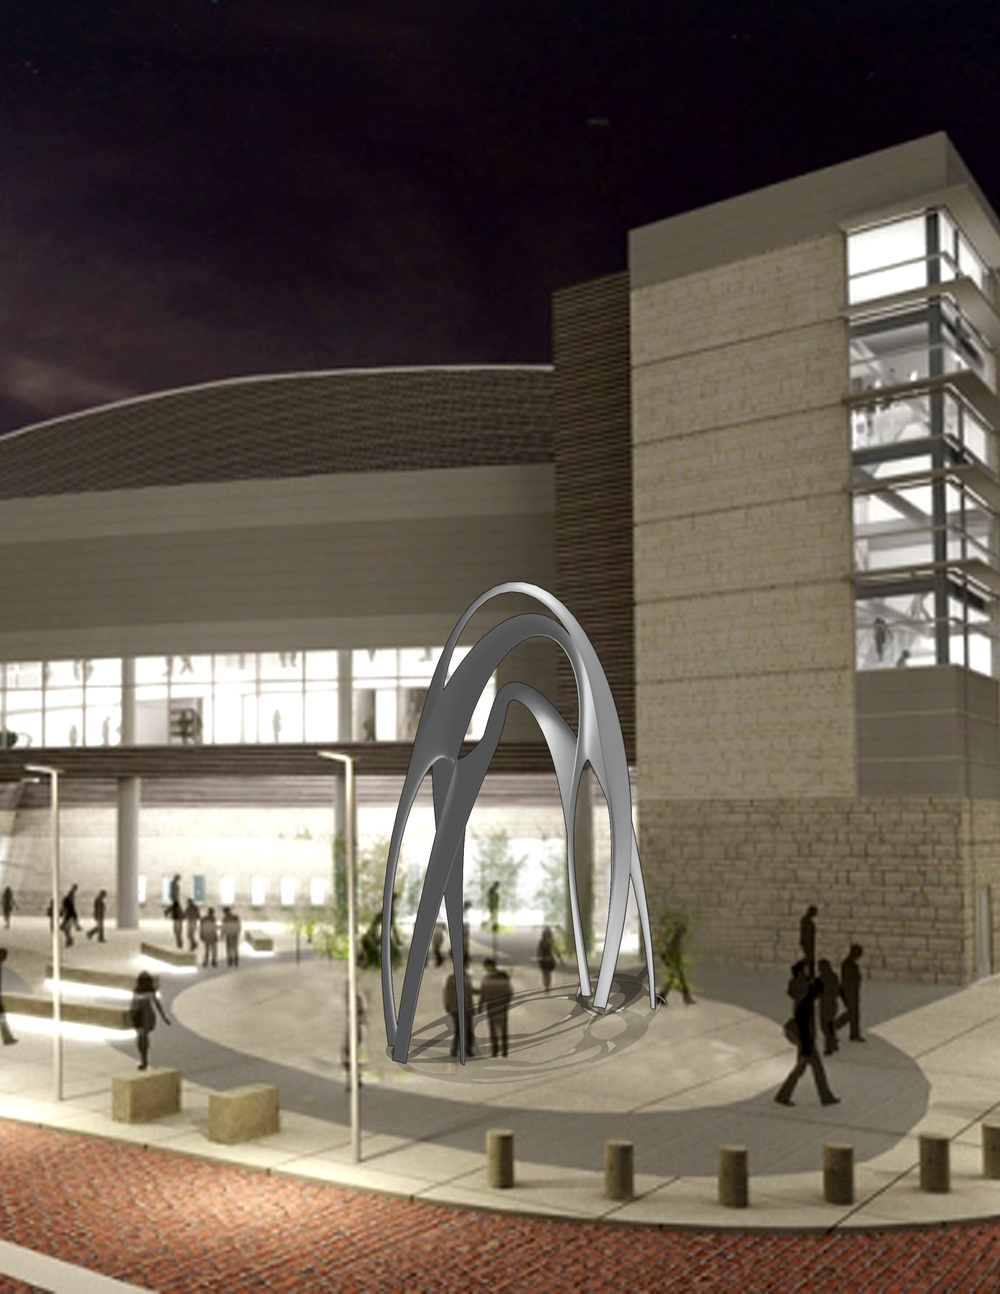 Evansville's Arena Art Project (Concept)